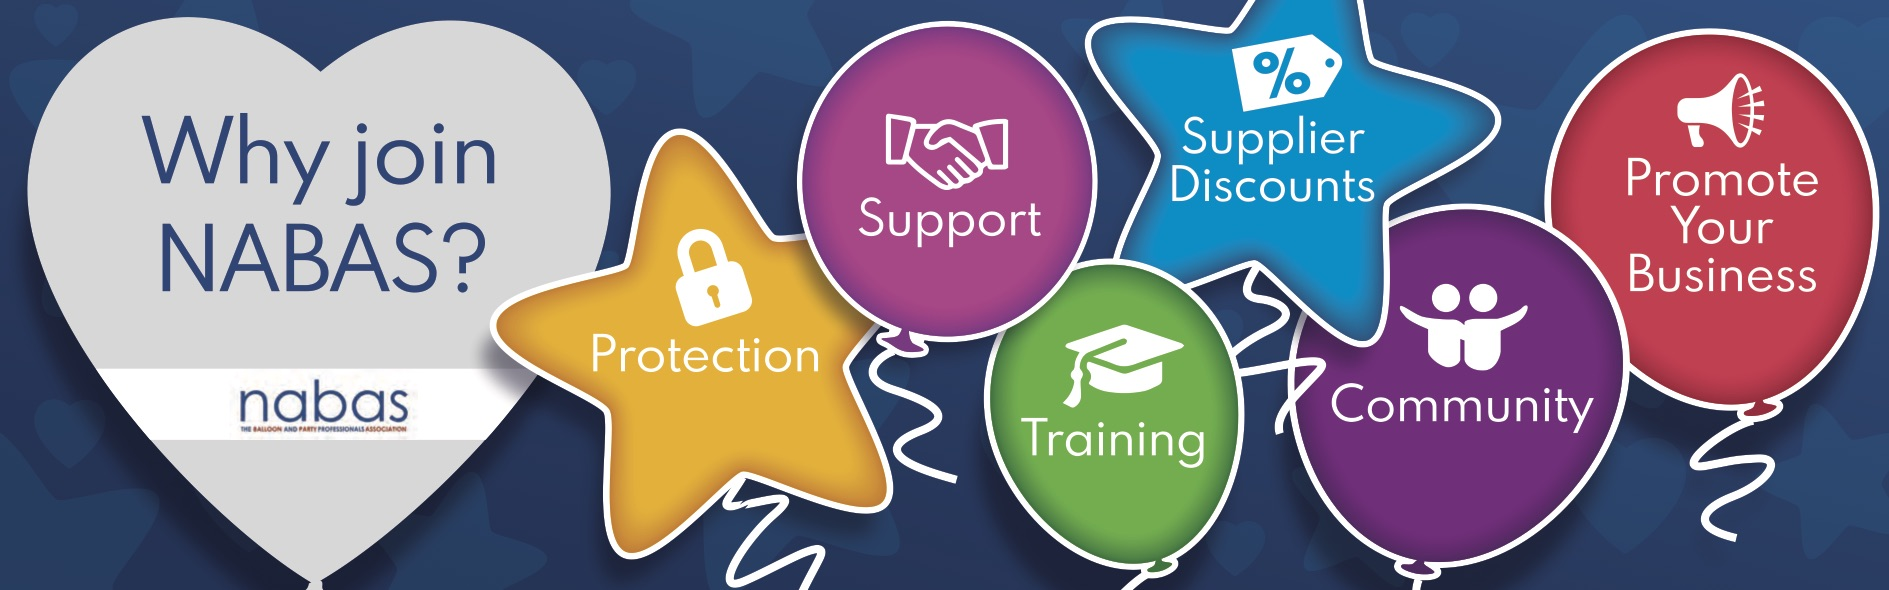 NABAS Infographic WEB BANNERS Outline2